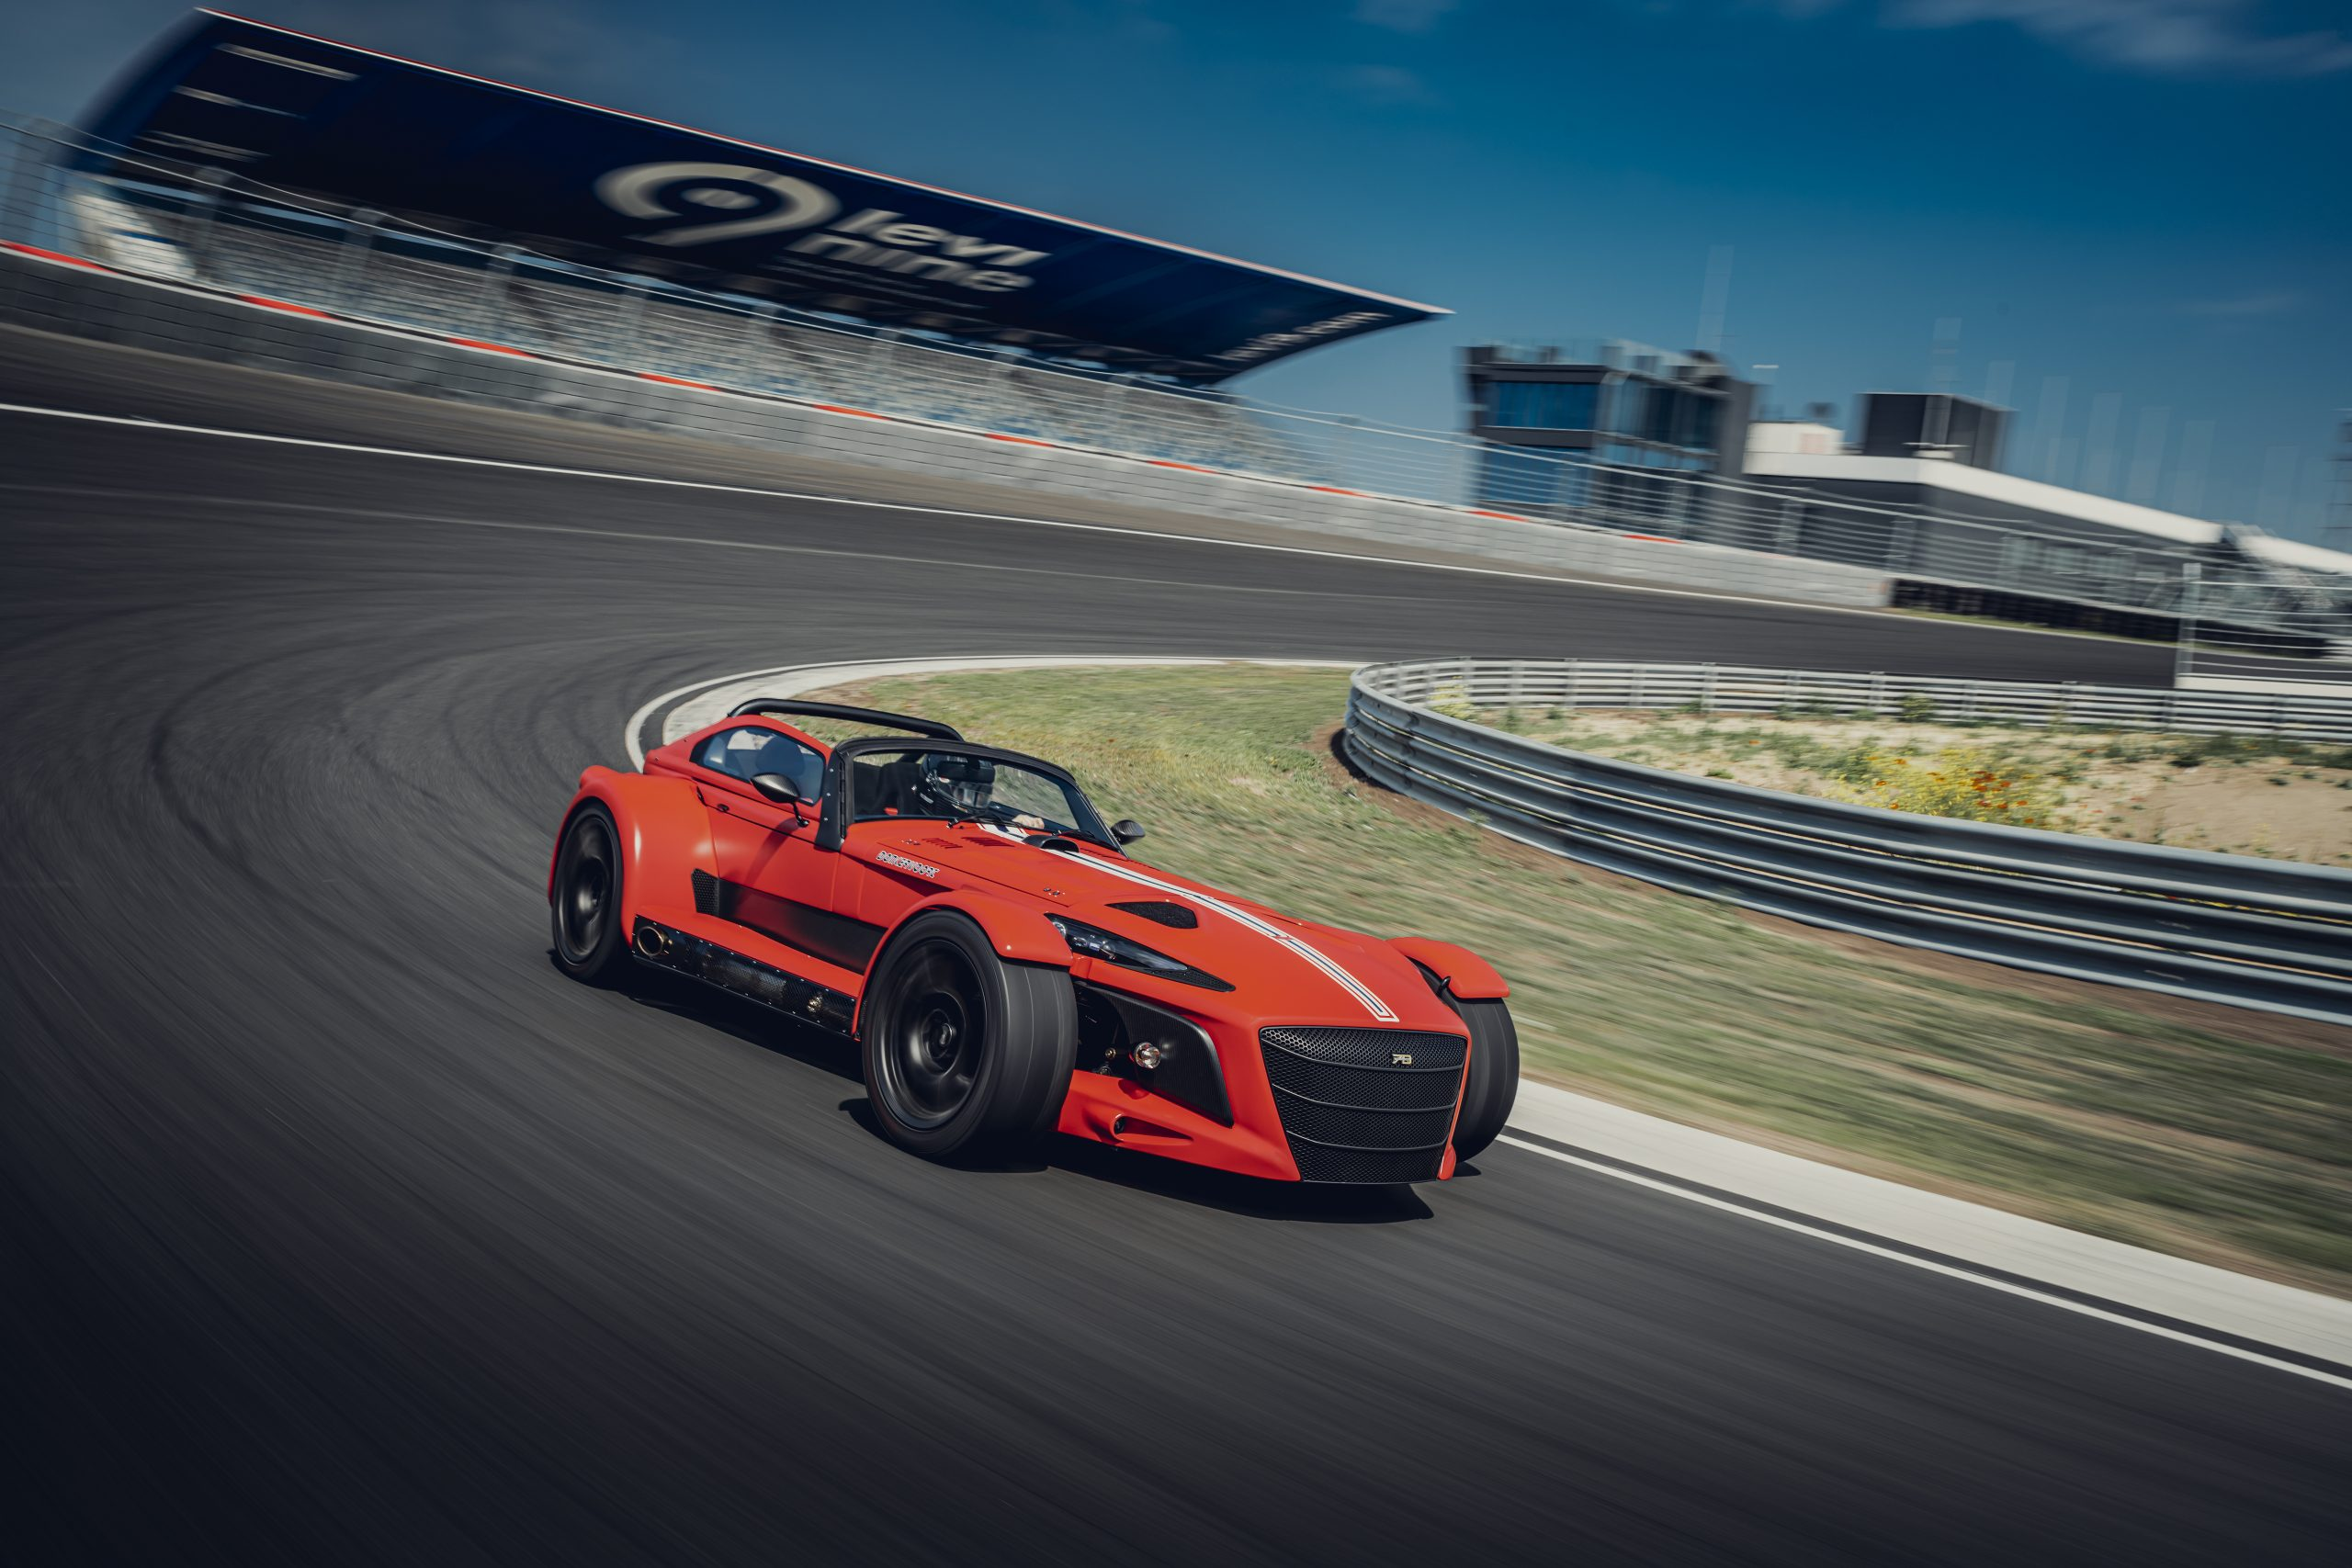 Donkervoort D8 GTO-JD70 R - 001